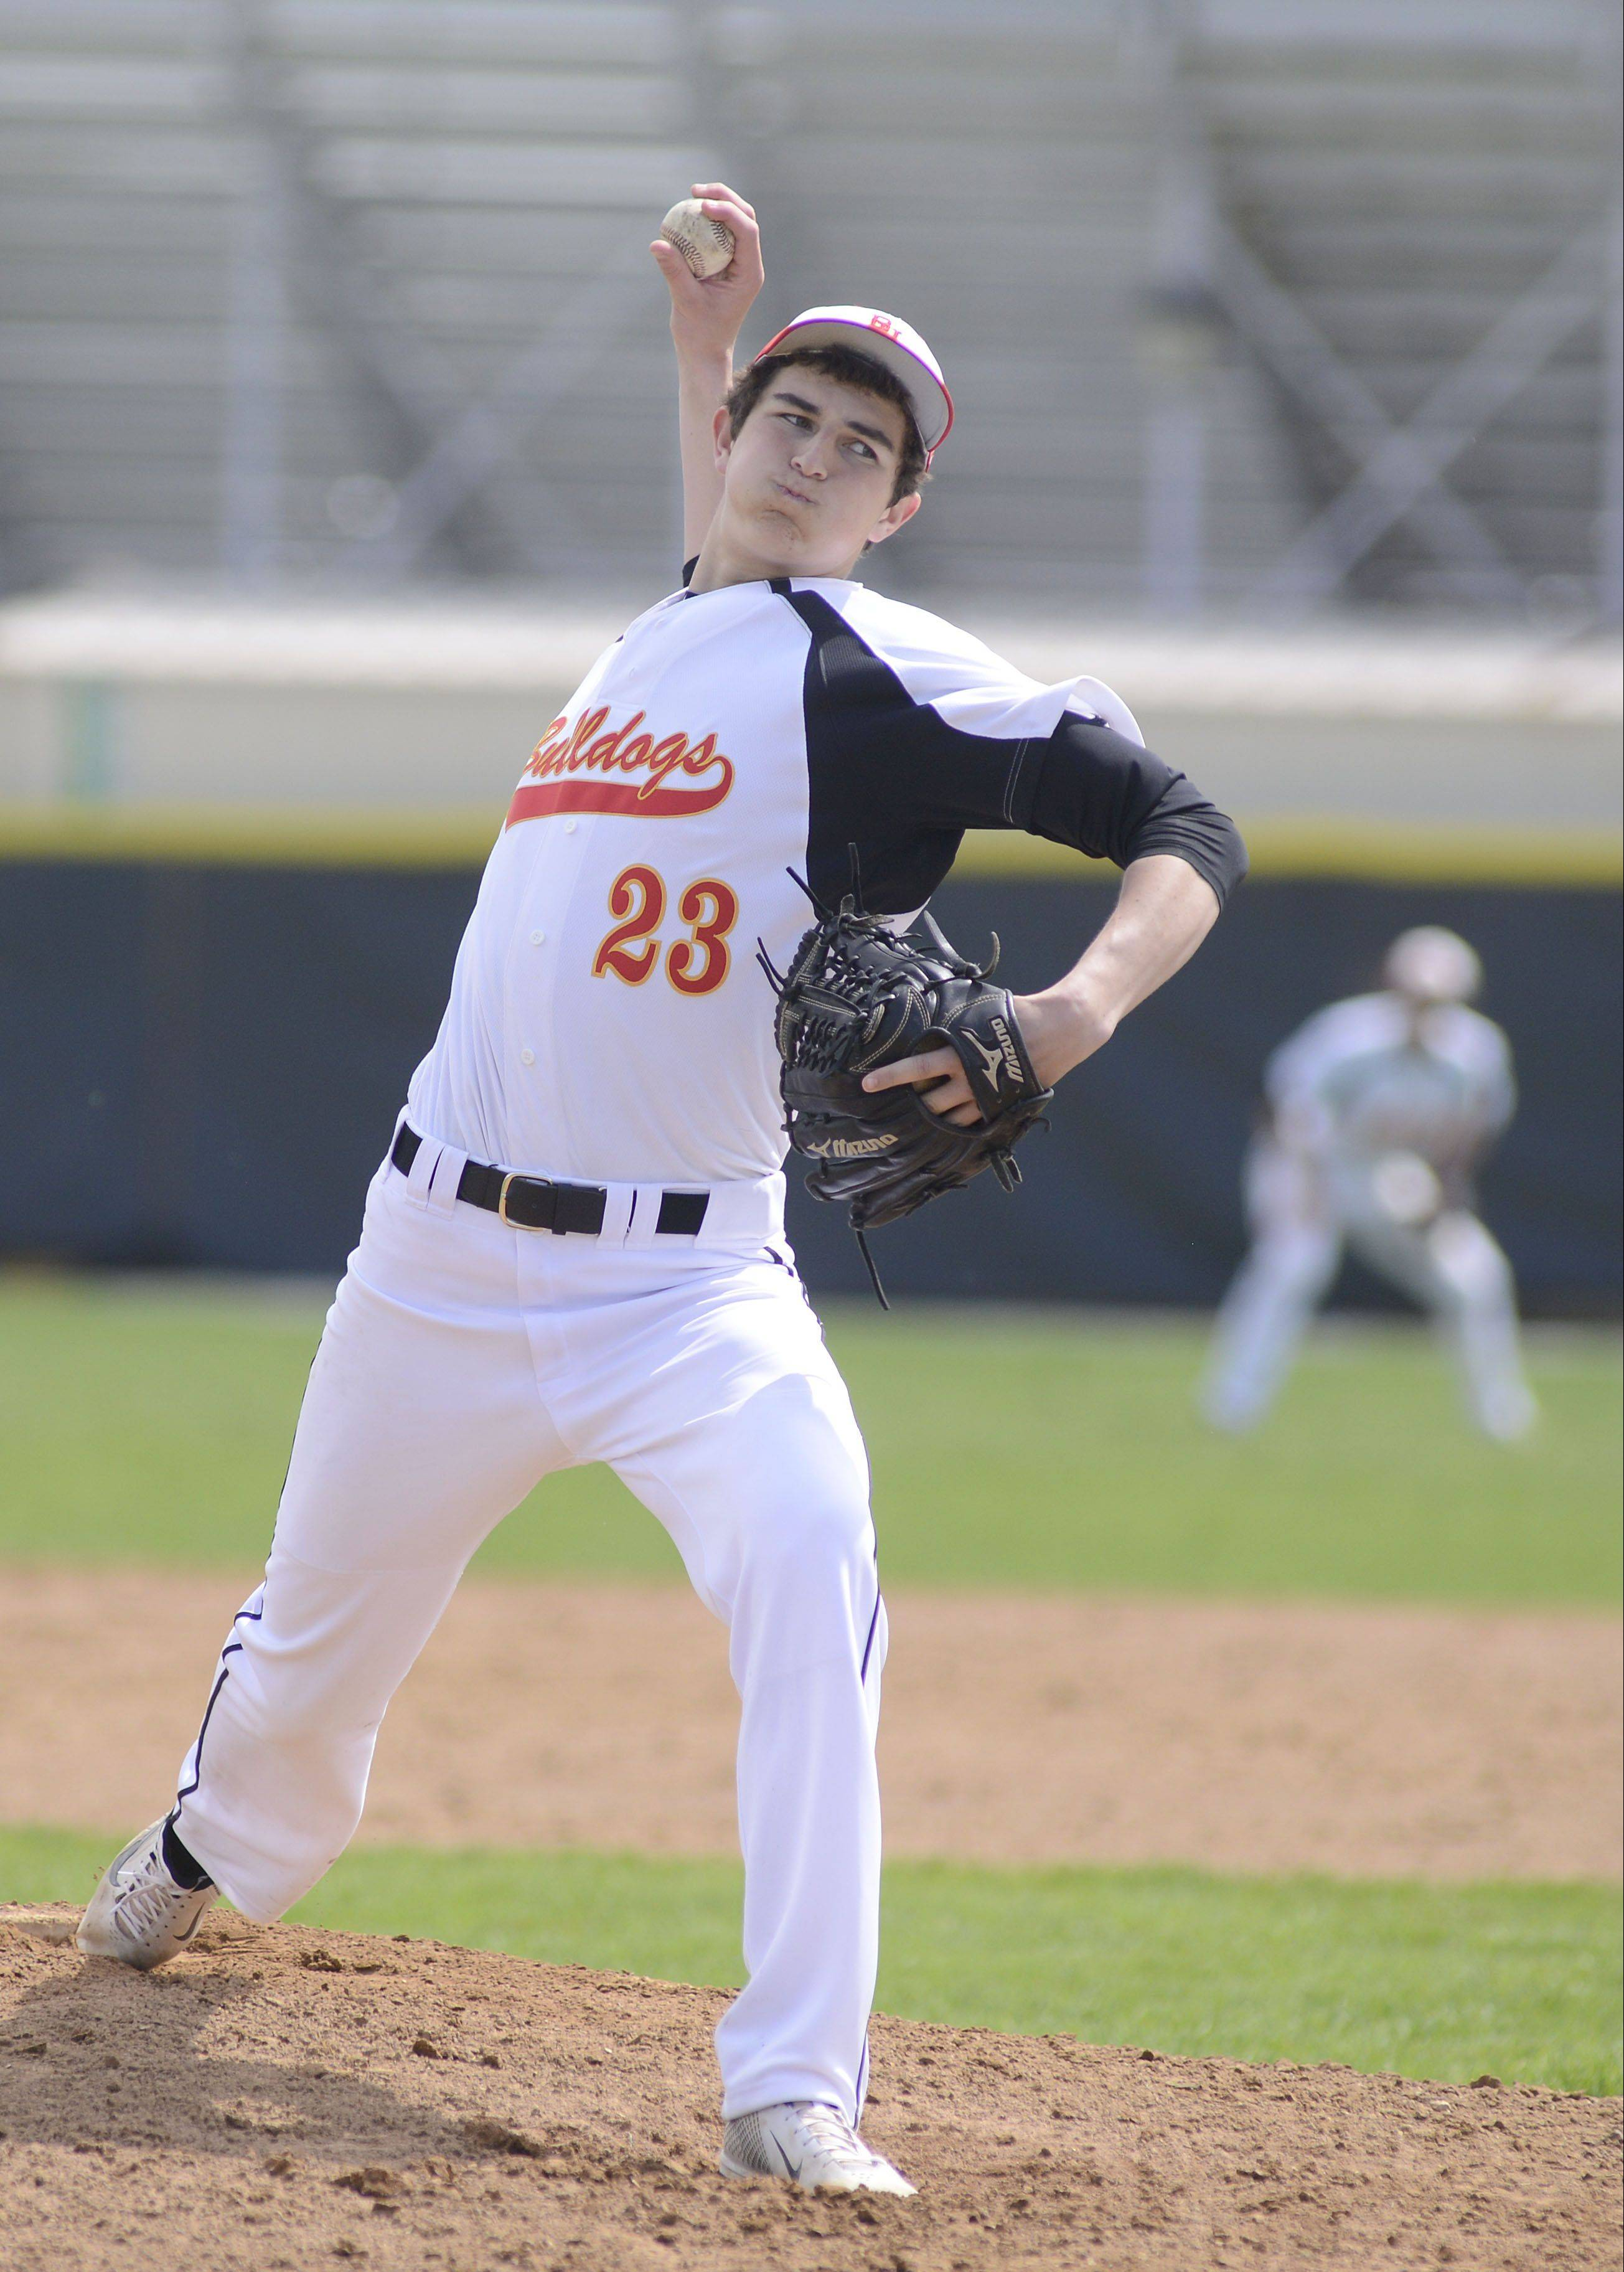 Batavia pitcher Emilio Tenuta earned the win in Game 1 against Geneva on Saturday.